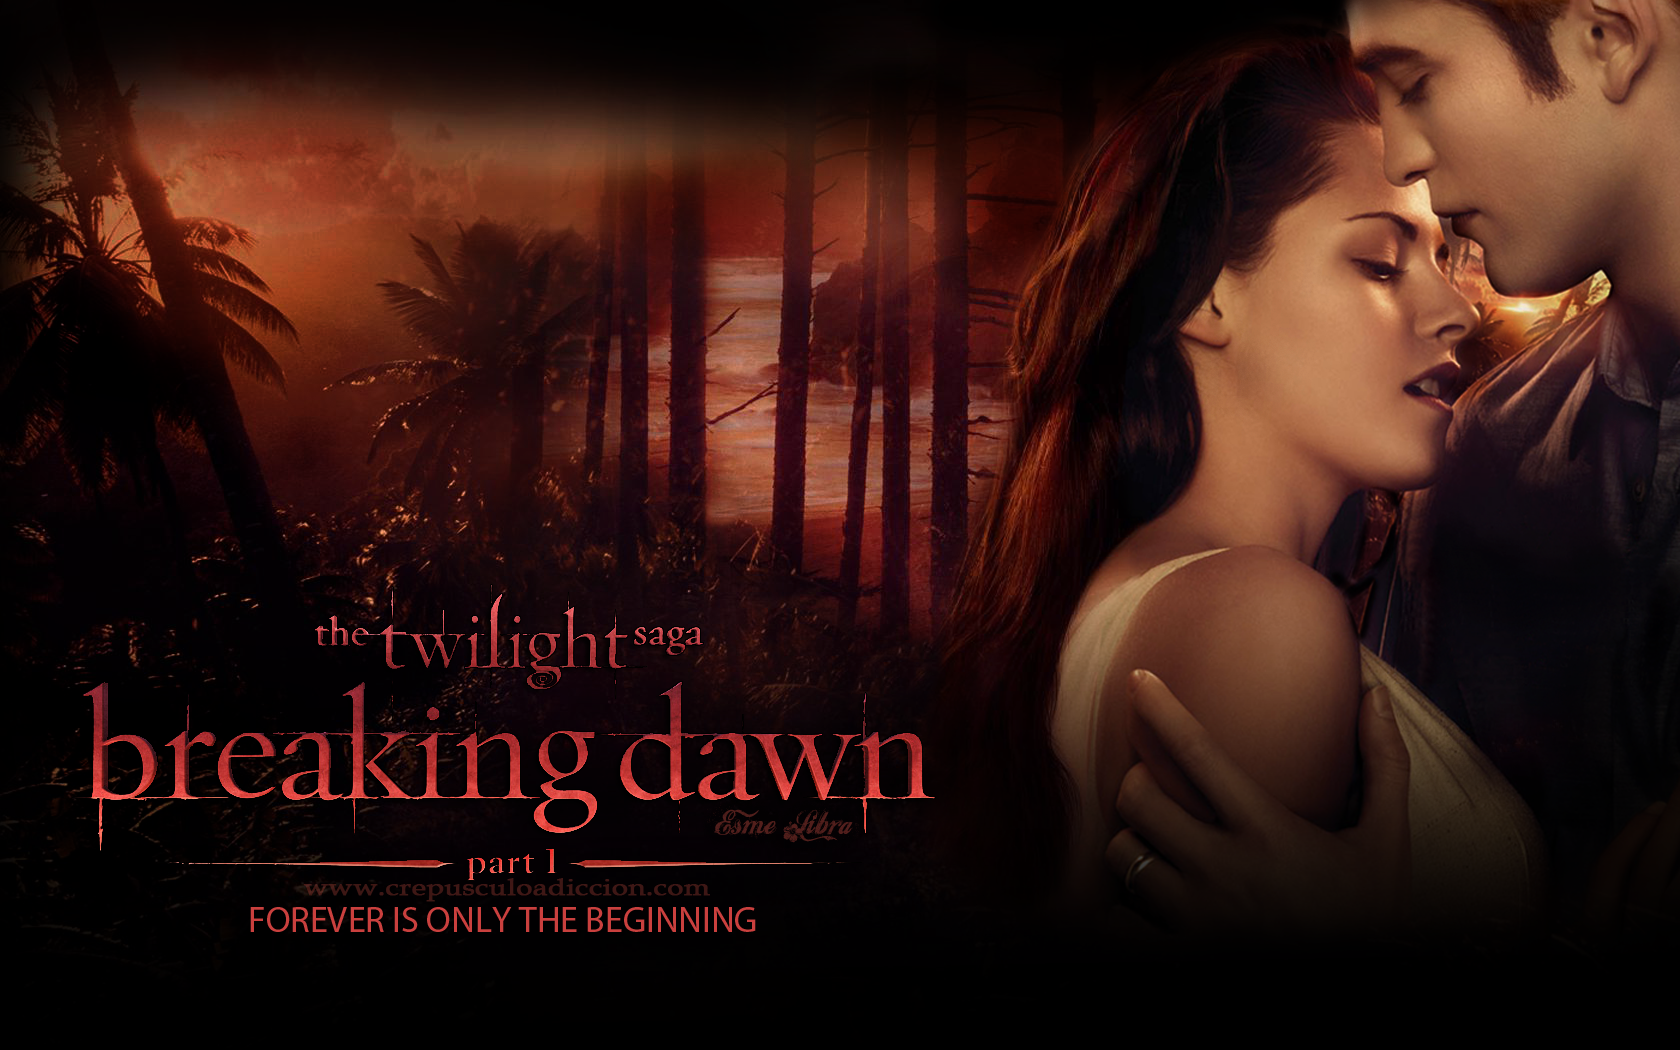 breaking dawn 75 years after breaking dawn the cullen's return to forks but what if not all of their new class mates are oblivious to the fact that they are vampires.